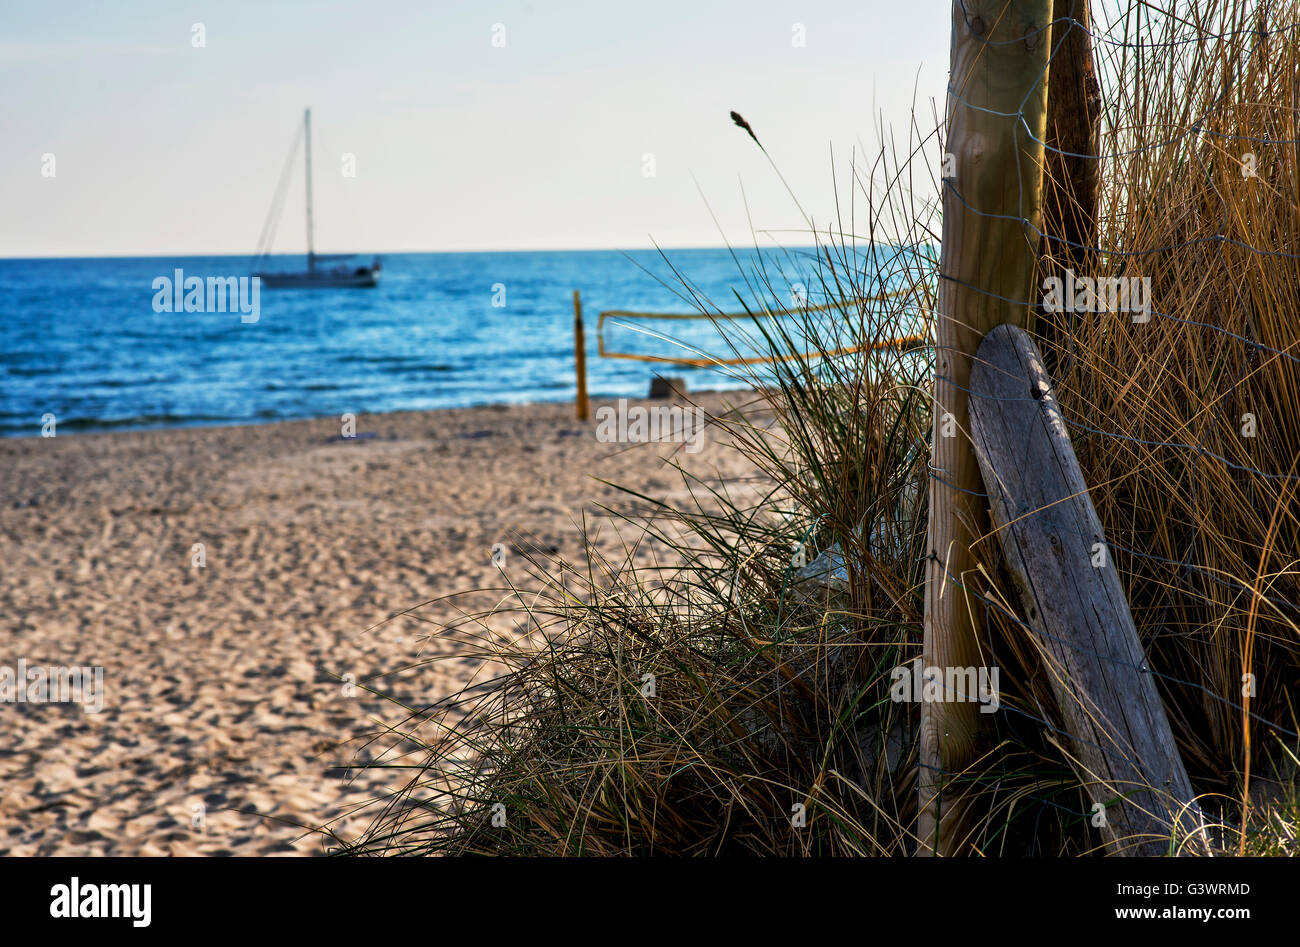 Sailboat anchored on a beach in the Baltic Sea - Stock Image